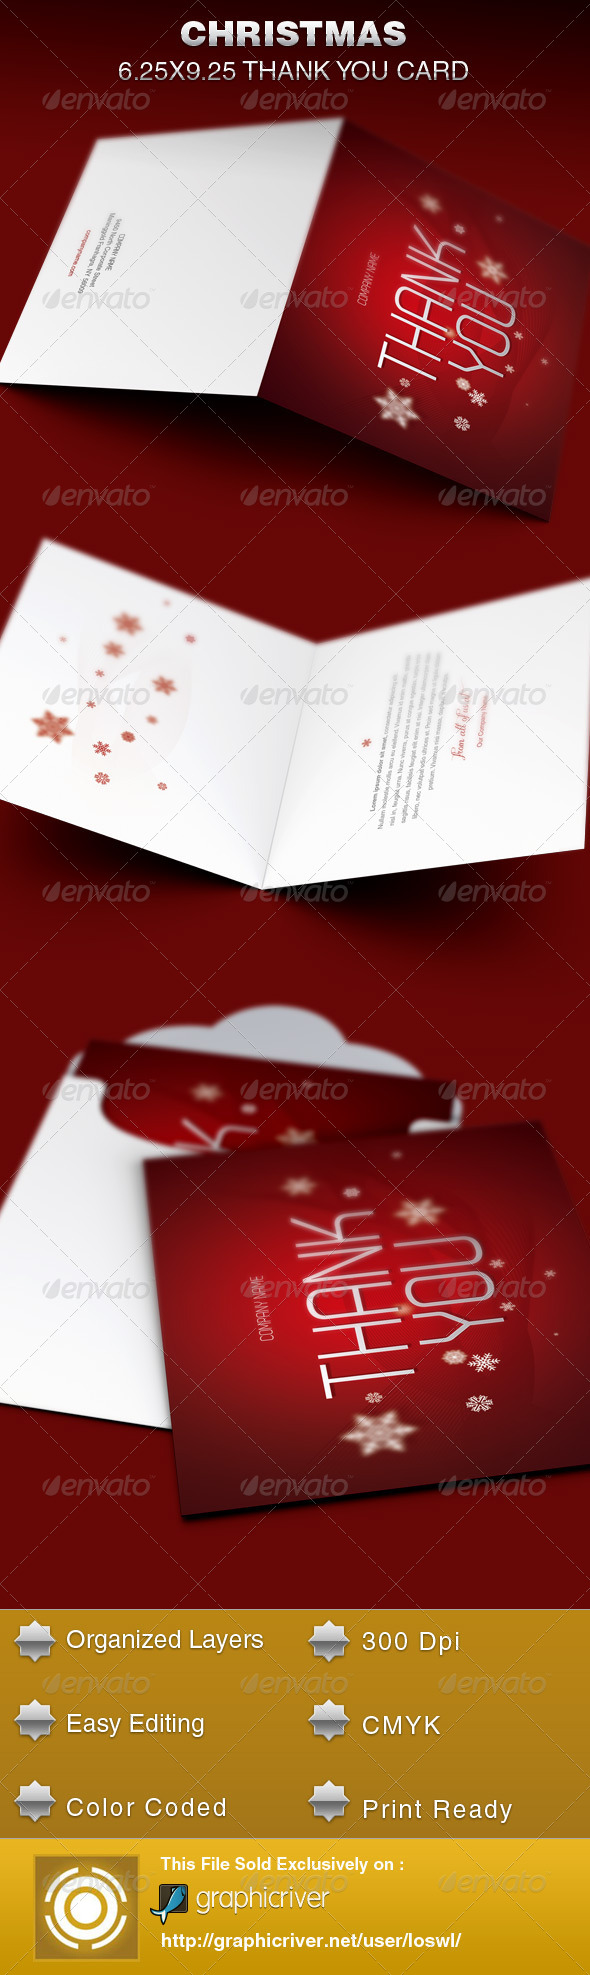 christmas thank you card template example